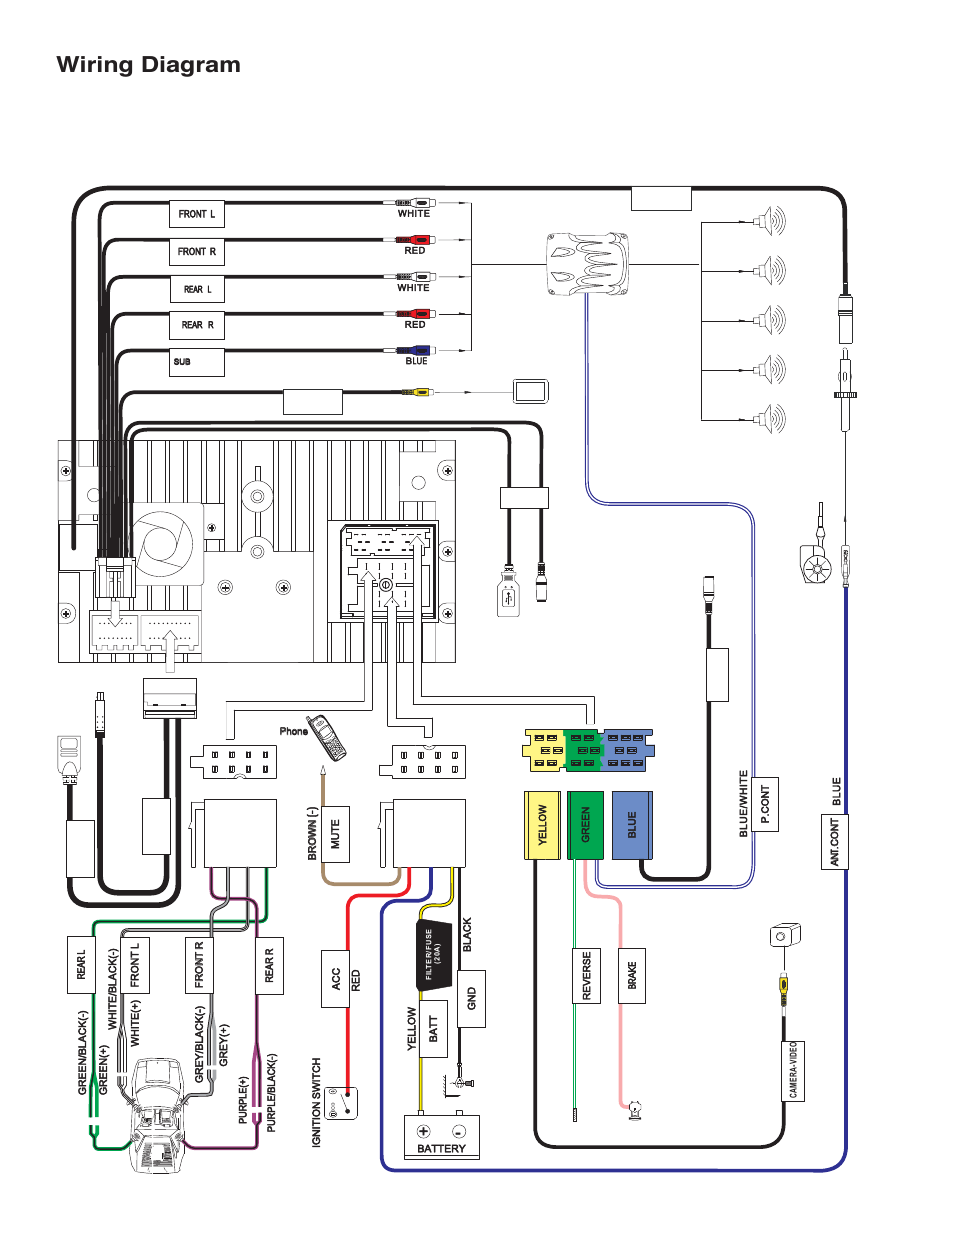 hight resolution of viper 5900 wiring diagram car alarm installation wiring diagrams jensen vm9224 page4 resize 665 2c861